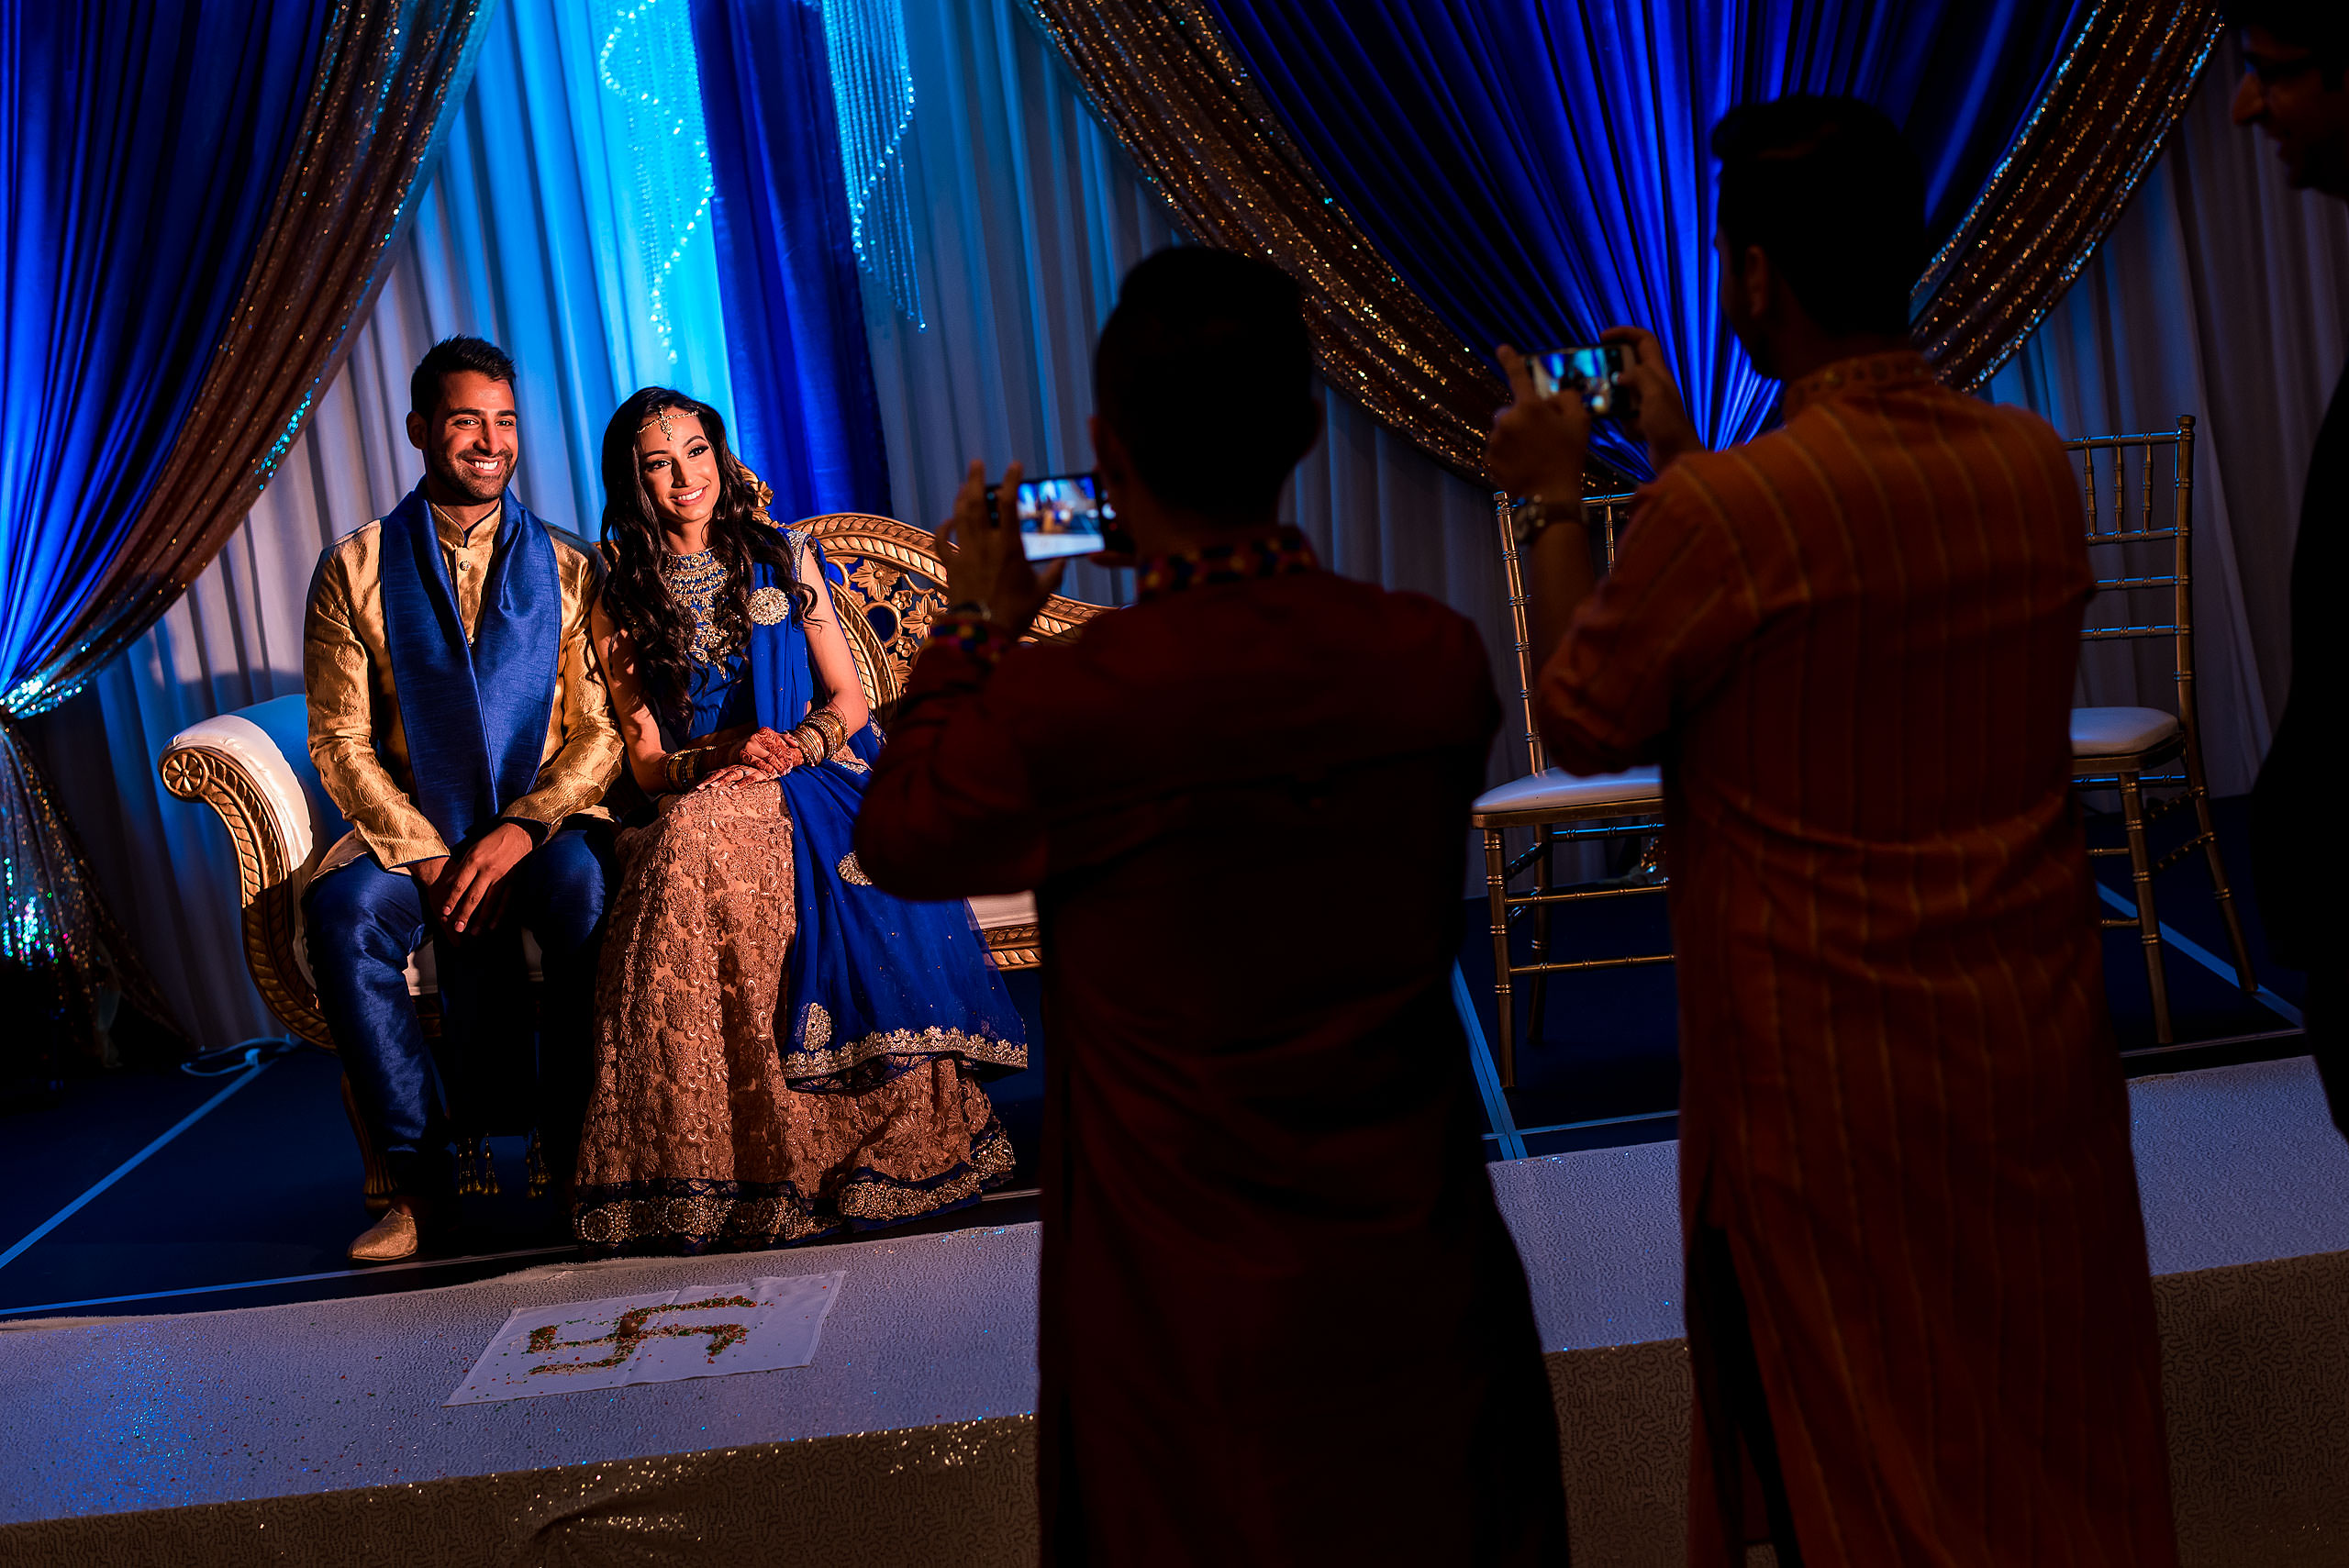 an indian bride and groom sitting on chairs having their photo taken by wedding guests by Calgary Banff Wedding Photographer Sean LeBlanc